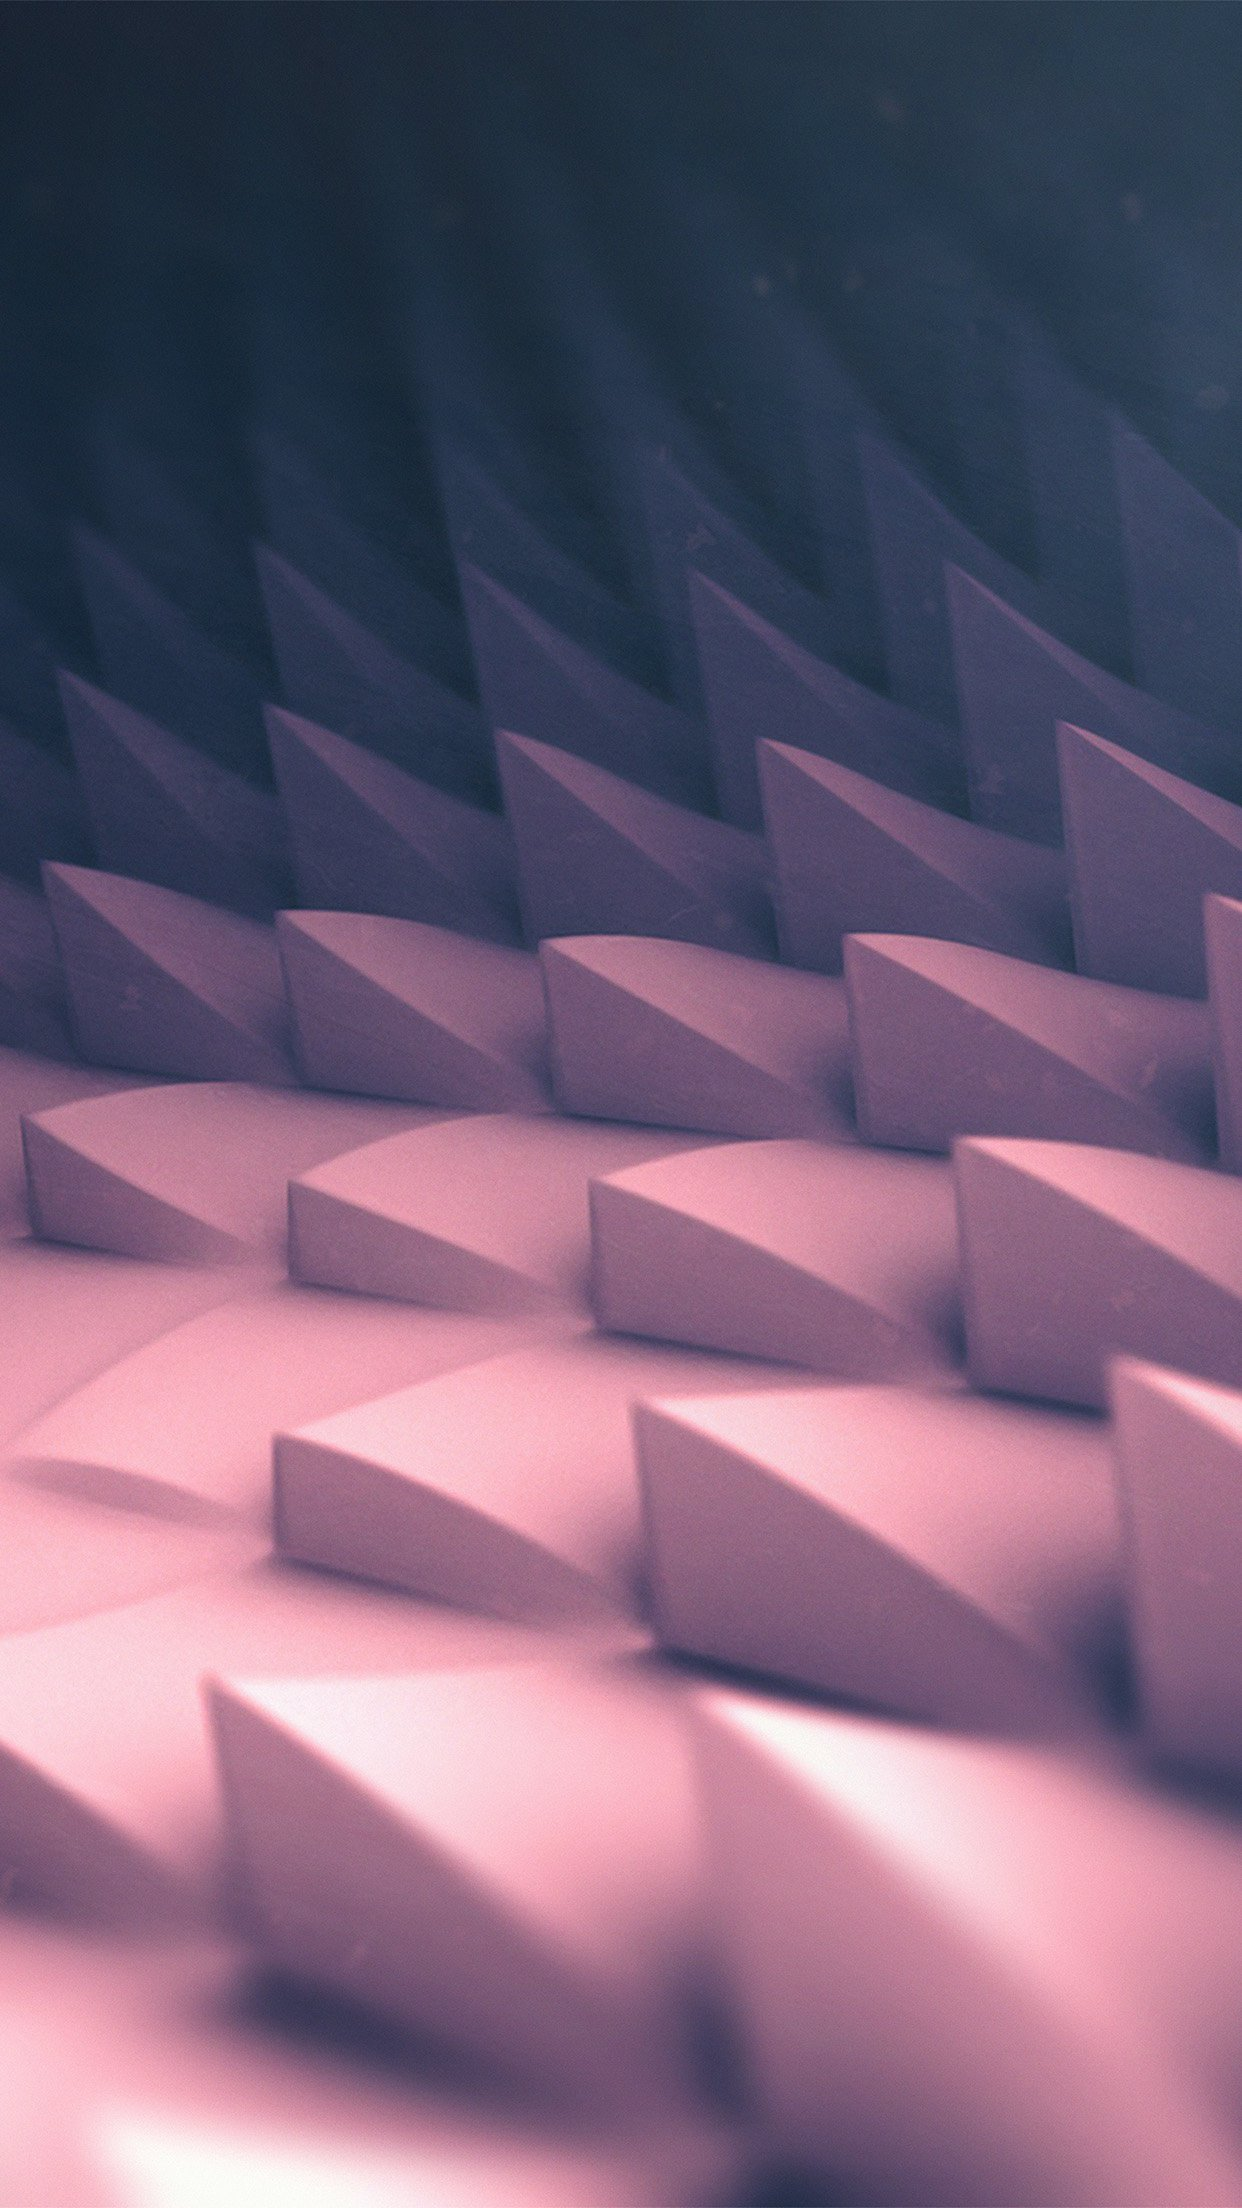 Geometric wallpapers for iPhone and iPad